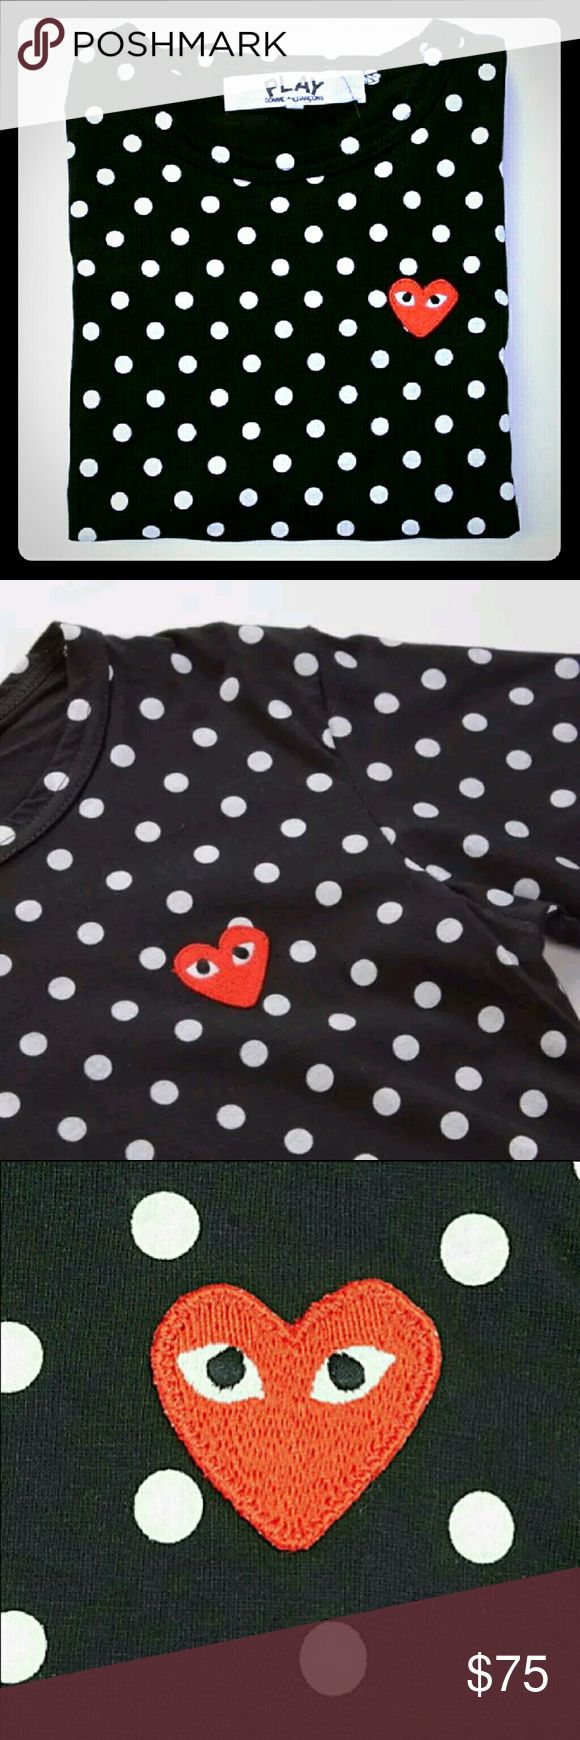 Women's Comme des Garcons CDG Polka Dot shirt I am selling a Women's Comme Des Garcons Polka Dot shirt. It is in fantastic condition. Only worn once. In a size XL. Please serious inquiries only. Comme des Garcons Tops Tees - Short Sleeve